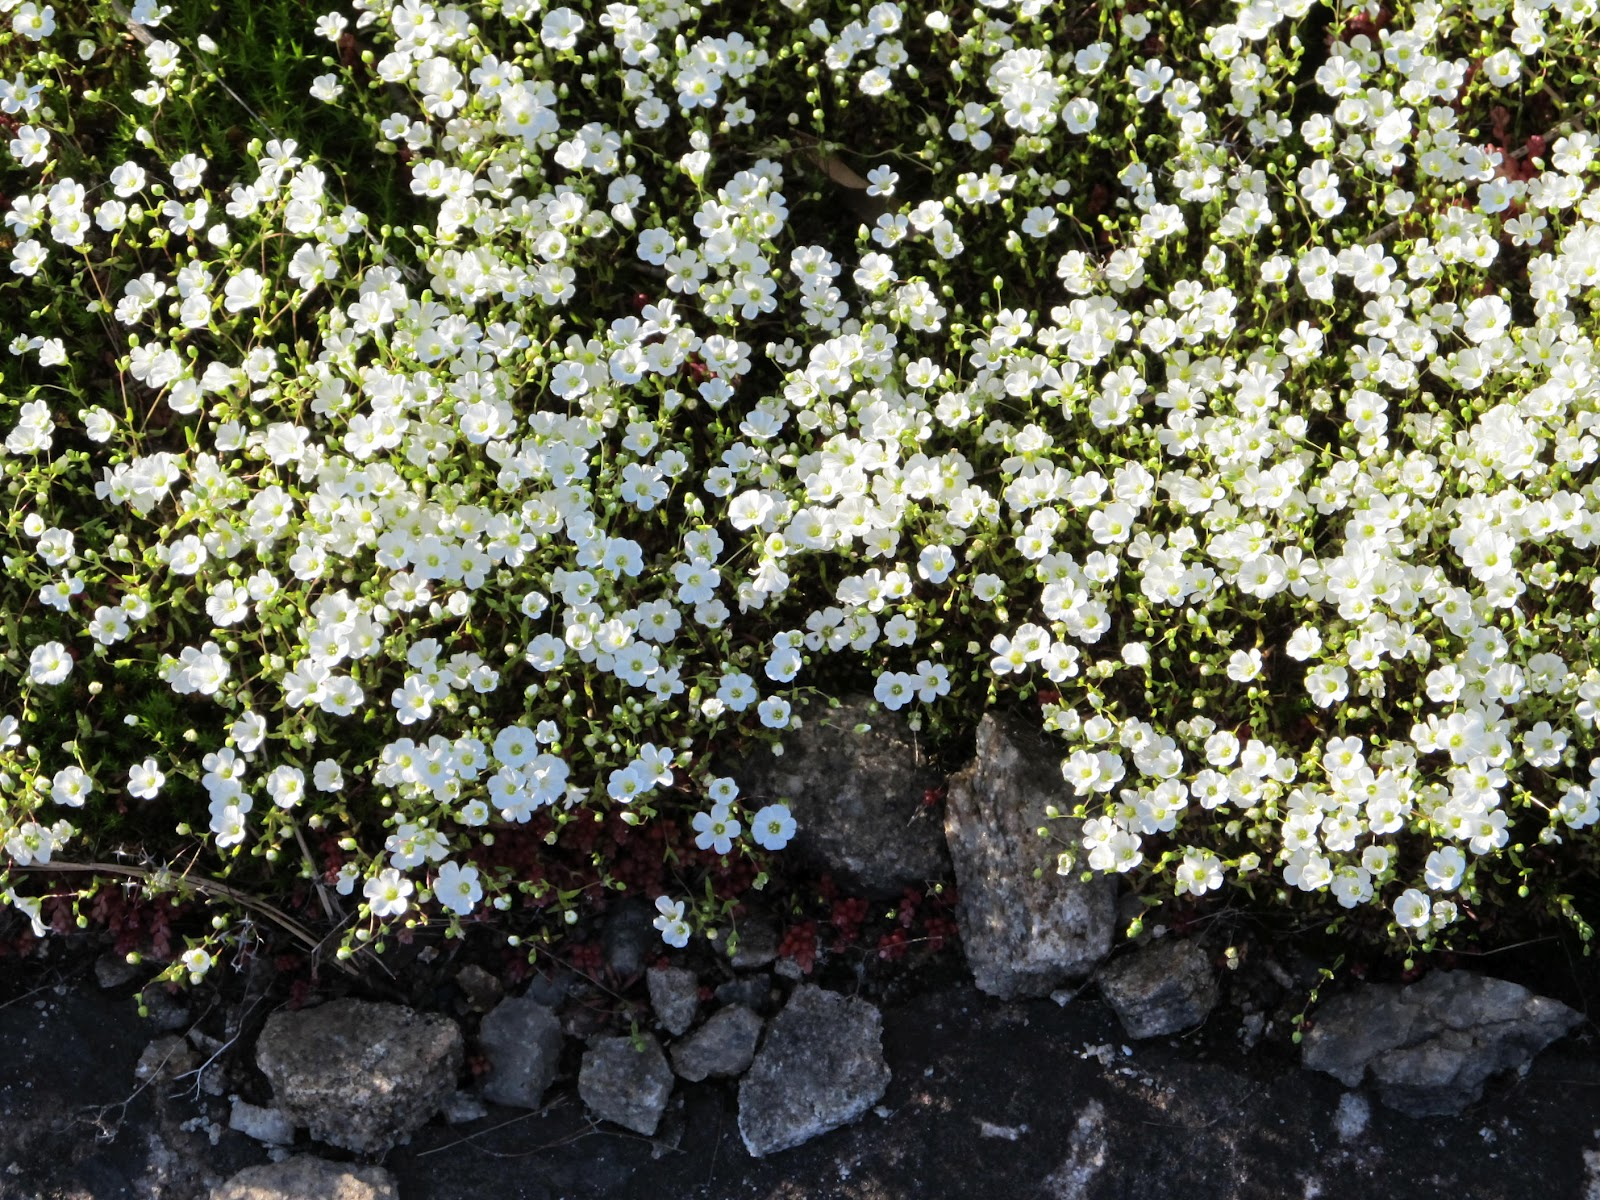 These Flowers Are Oneflower Schwort But I Will Always Think Of Them As The Little White Which Give Me Great Joy My Name For Be